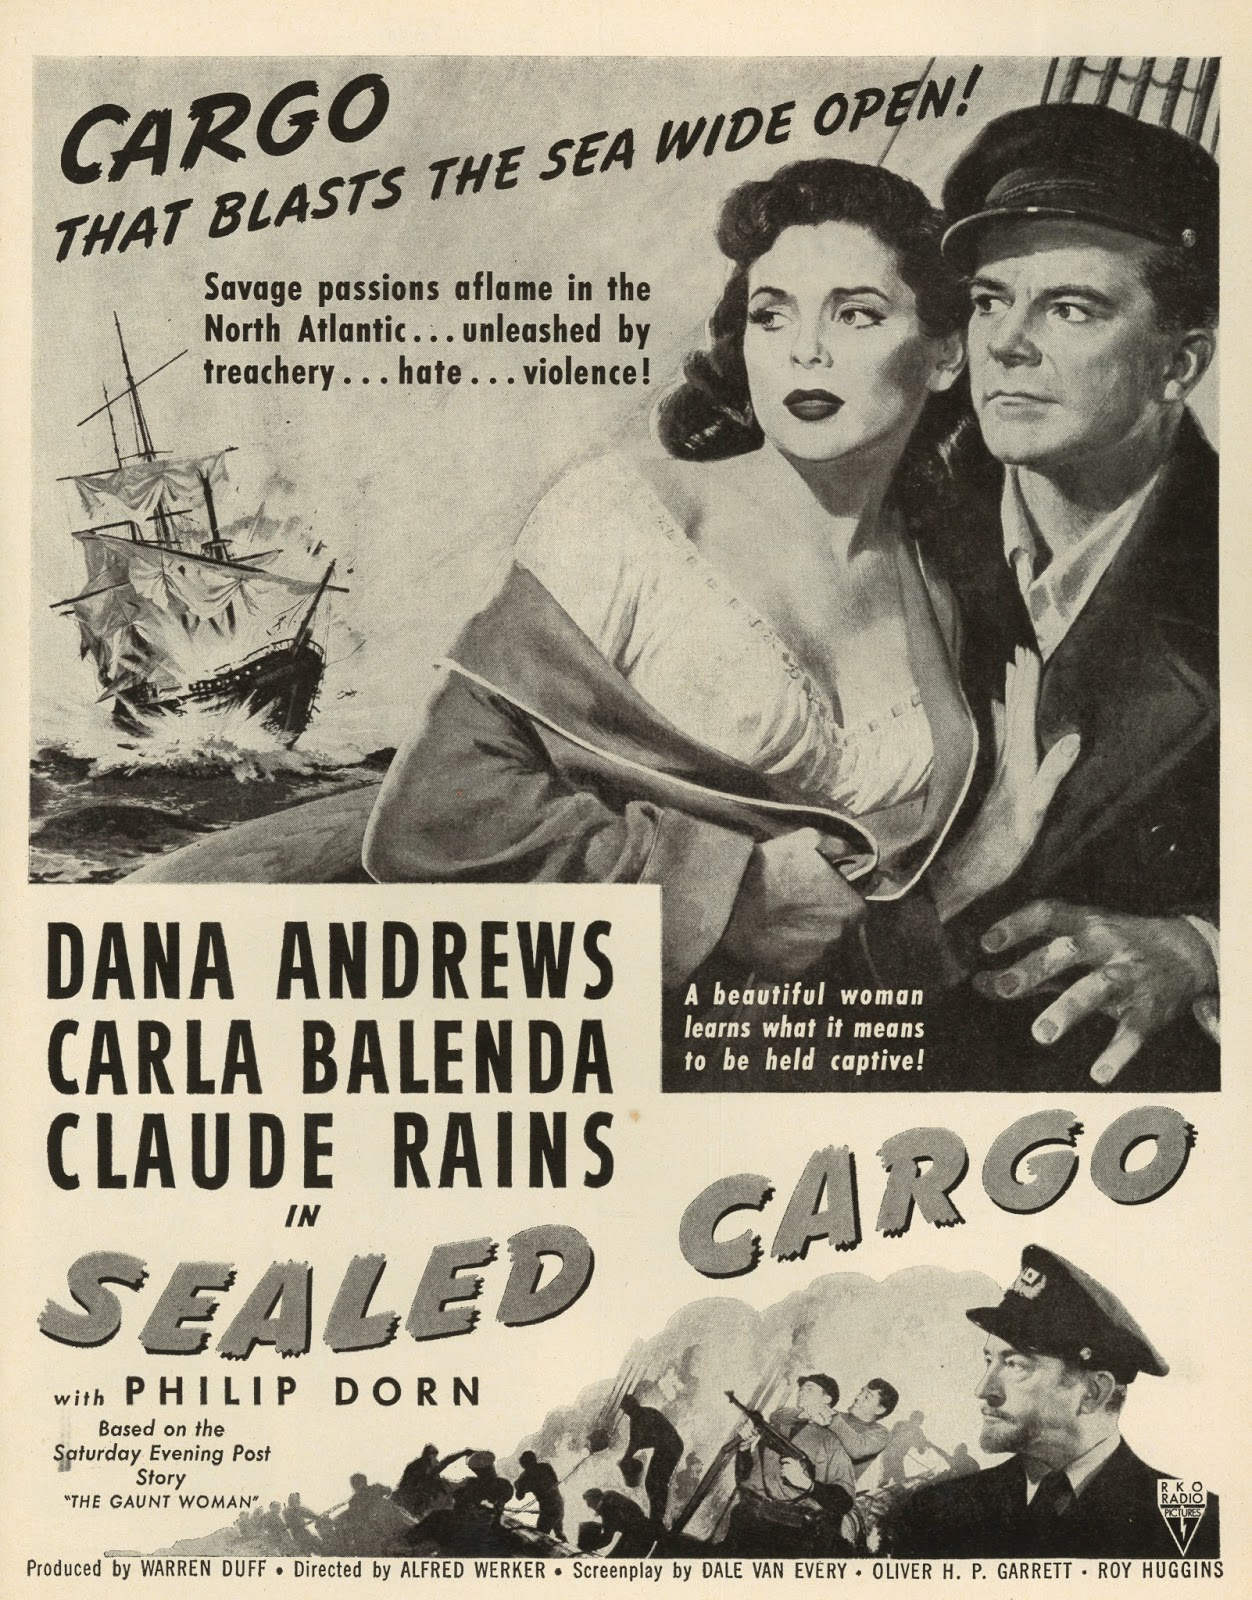 Greenbriar Picture Shows Dana Andrews On Troubled Water